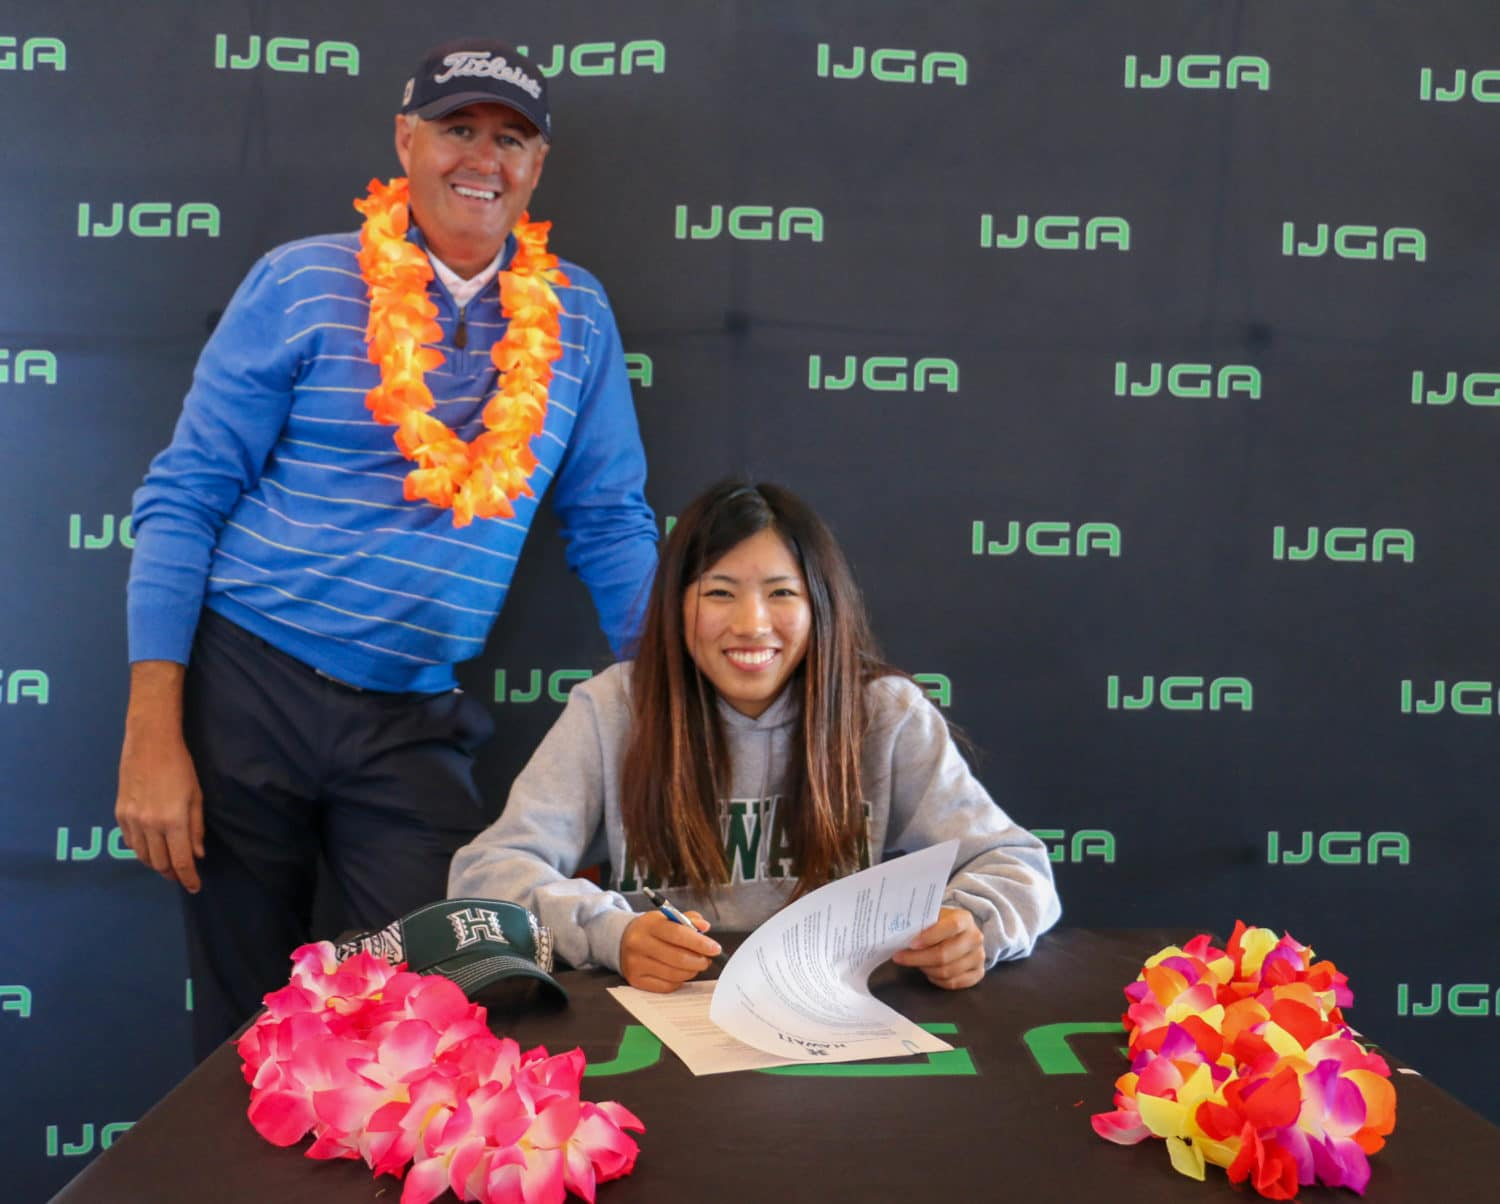 IJGA Senior Signs to Play Division 1 Golf at the University of Hawaii